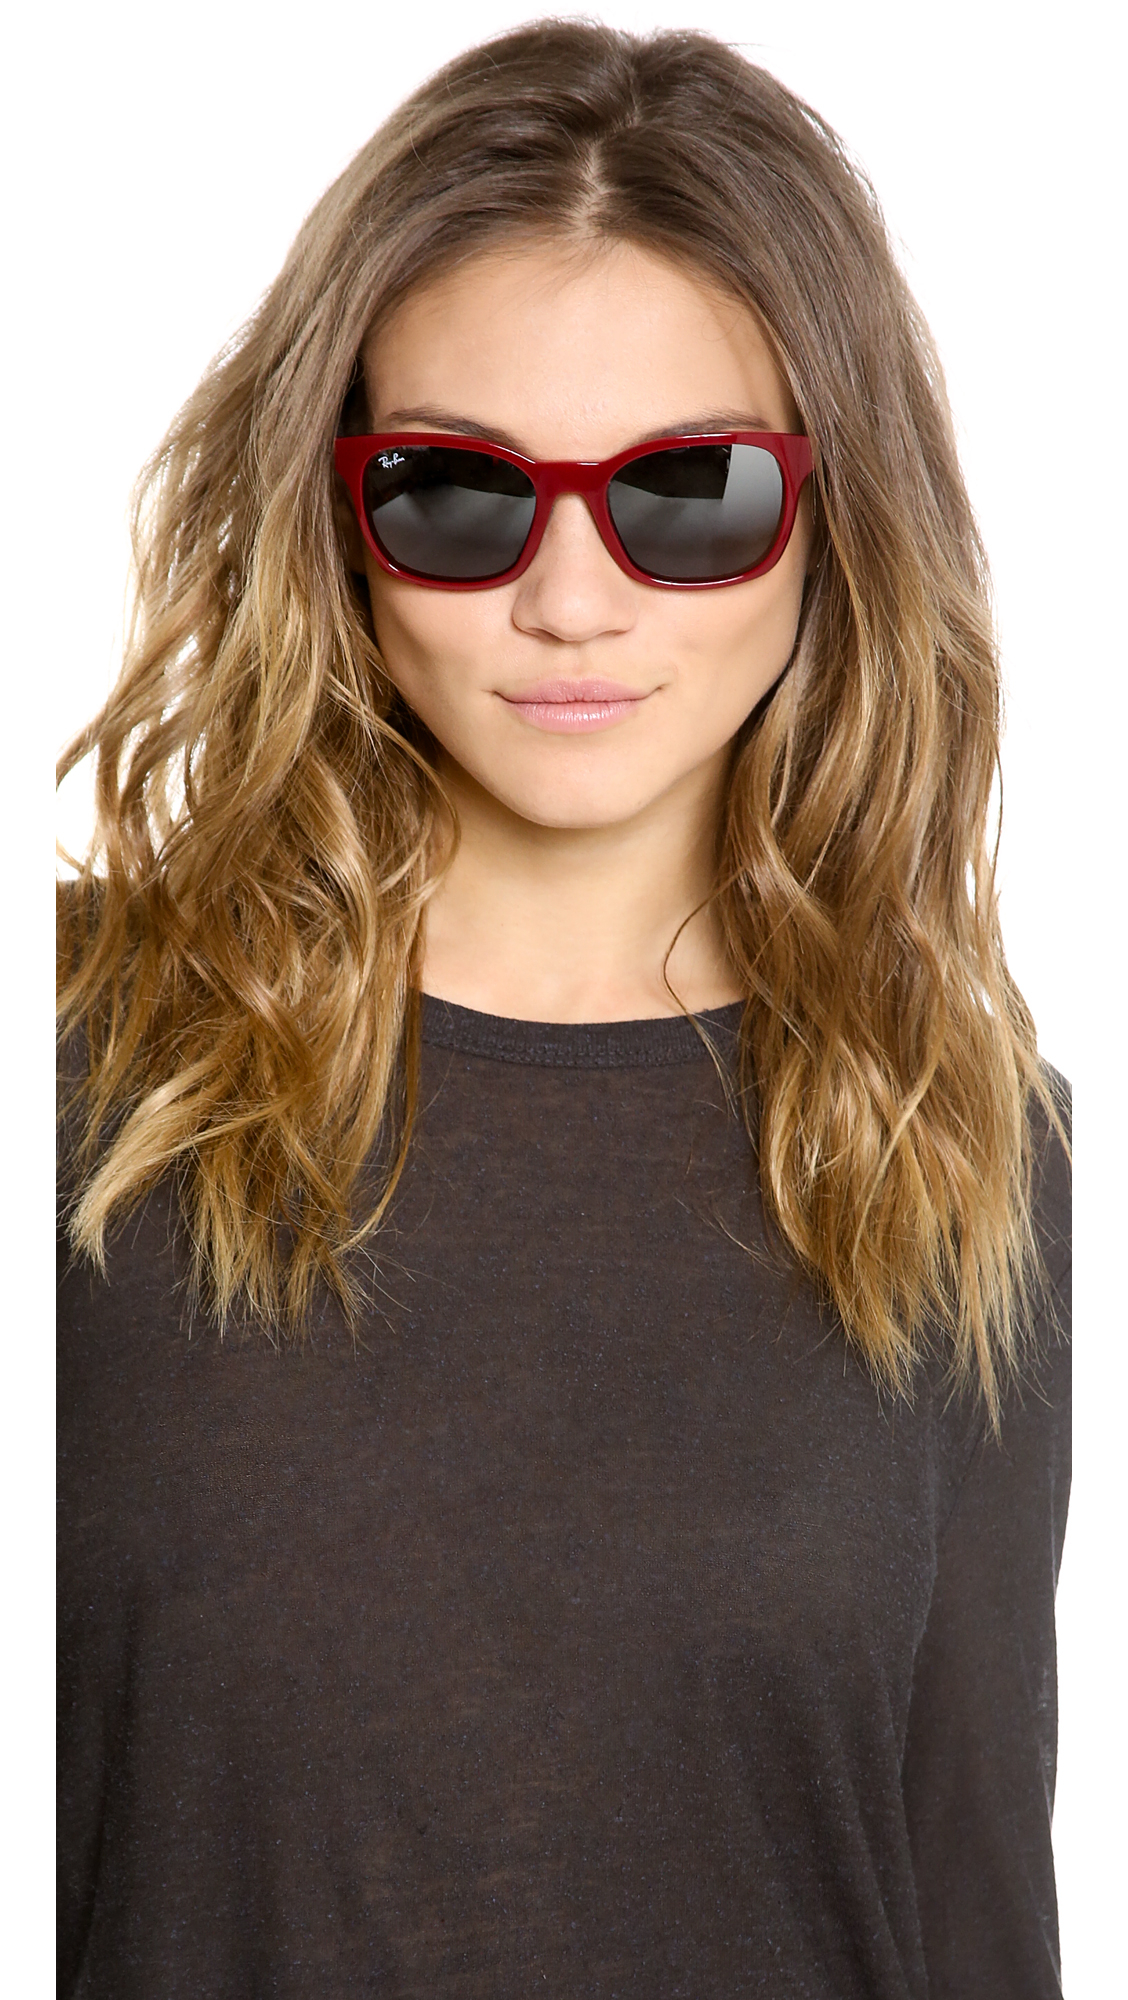 f1970edc43cf1 Lyst - Ray-Ban Oversized Square Sunglasses in Red